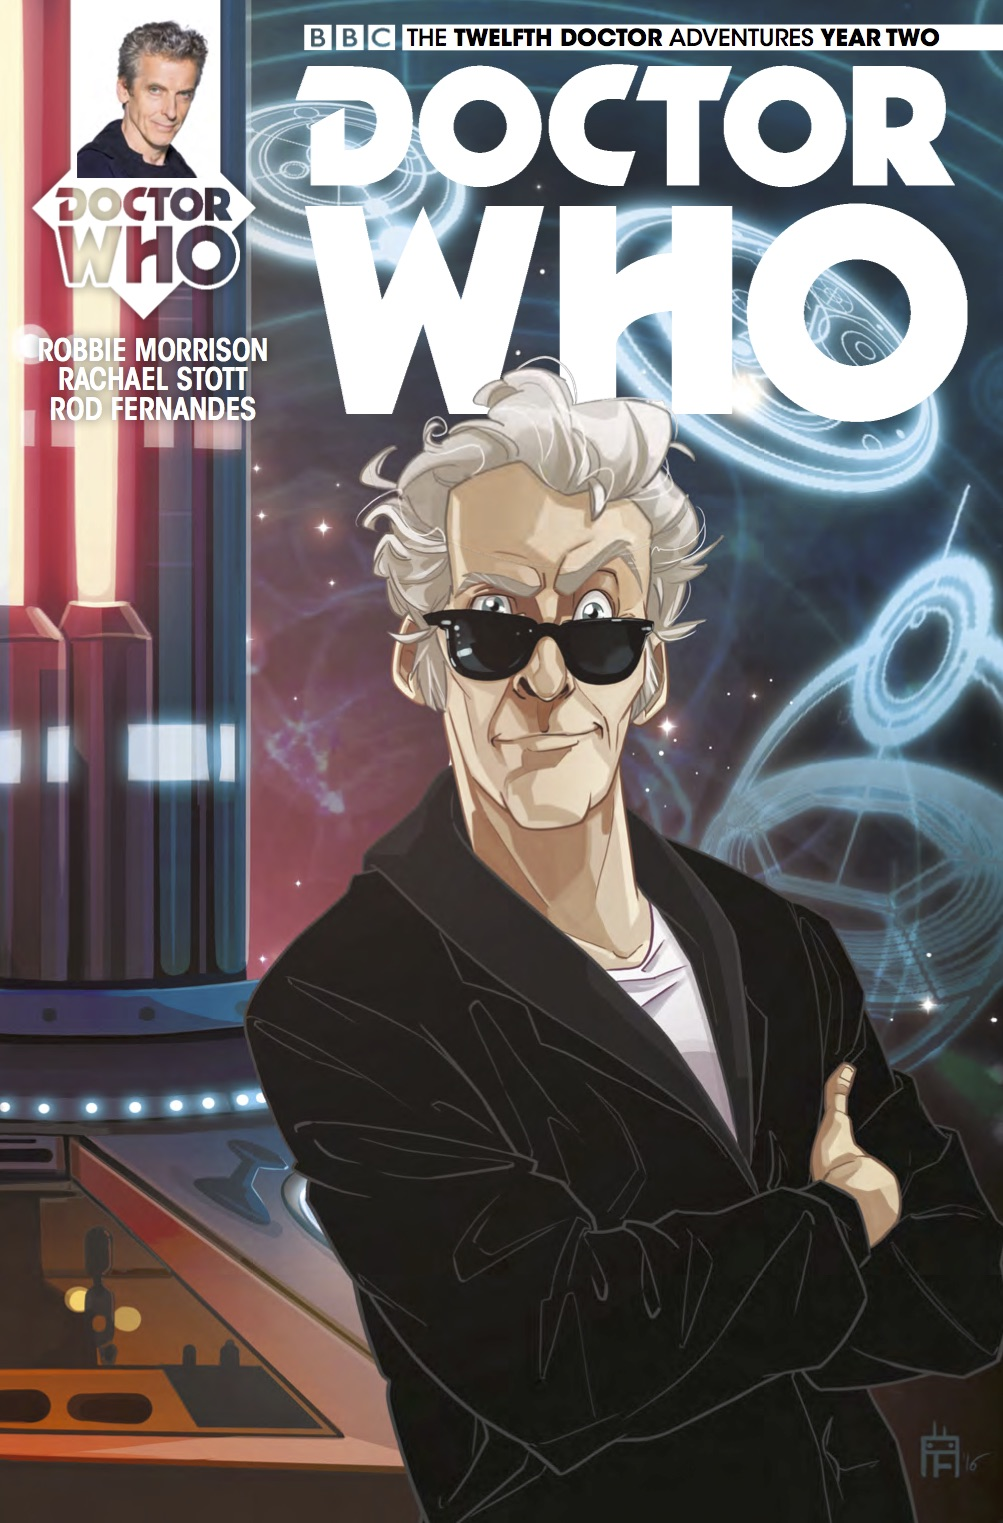 The Twelfth Doctor 2-15 Cover D (Credit: Titan)